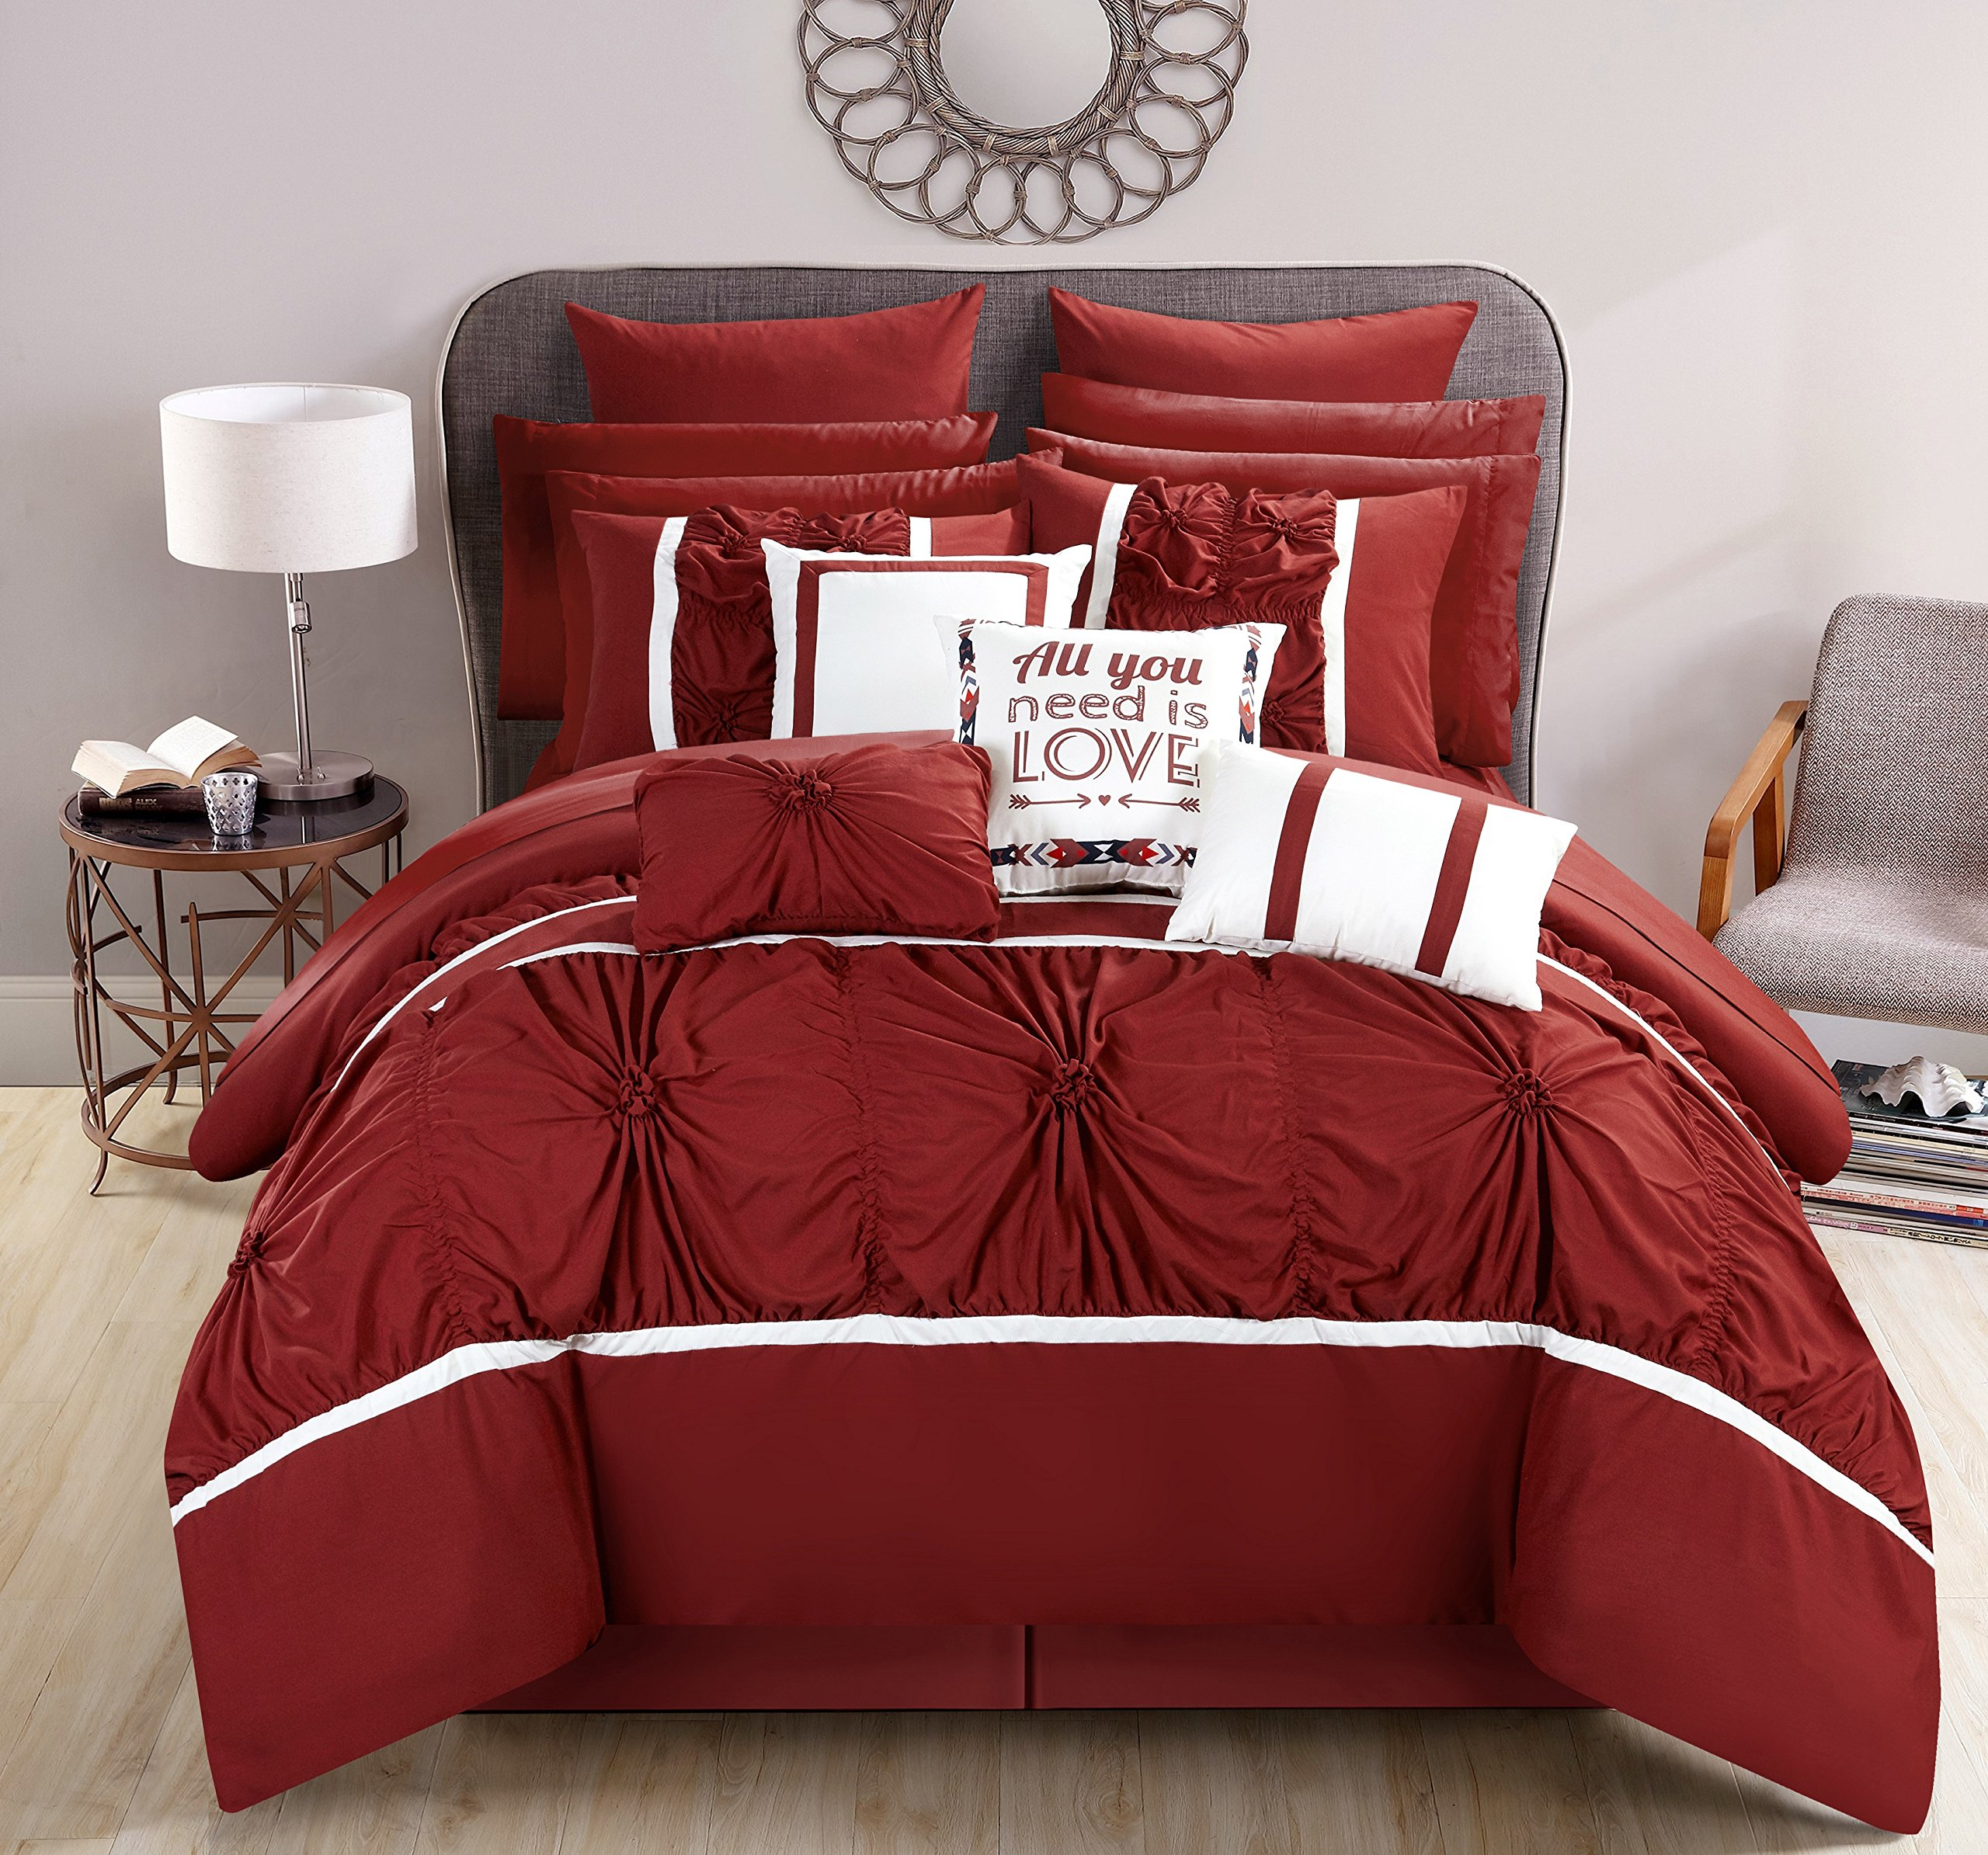 Chic Home CS2768-AN Ashville 16 Piece Bed in A Bag Comforter Set, Red, Queen by Chic Home